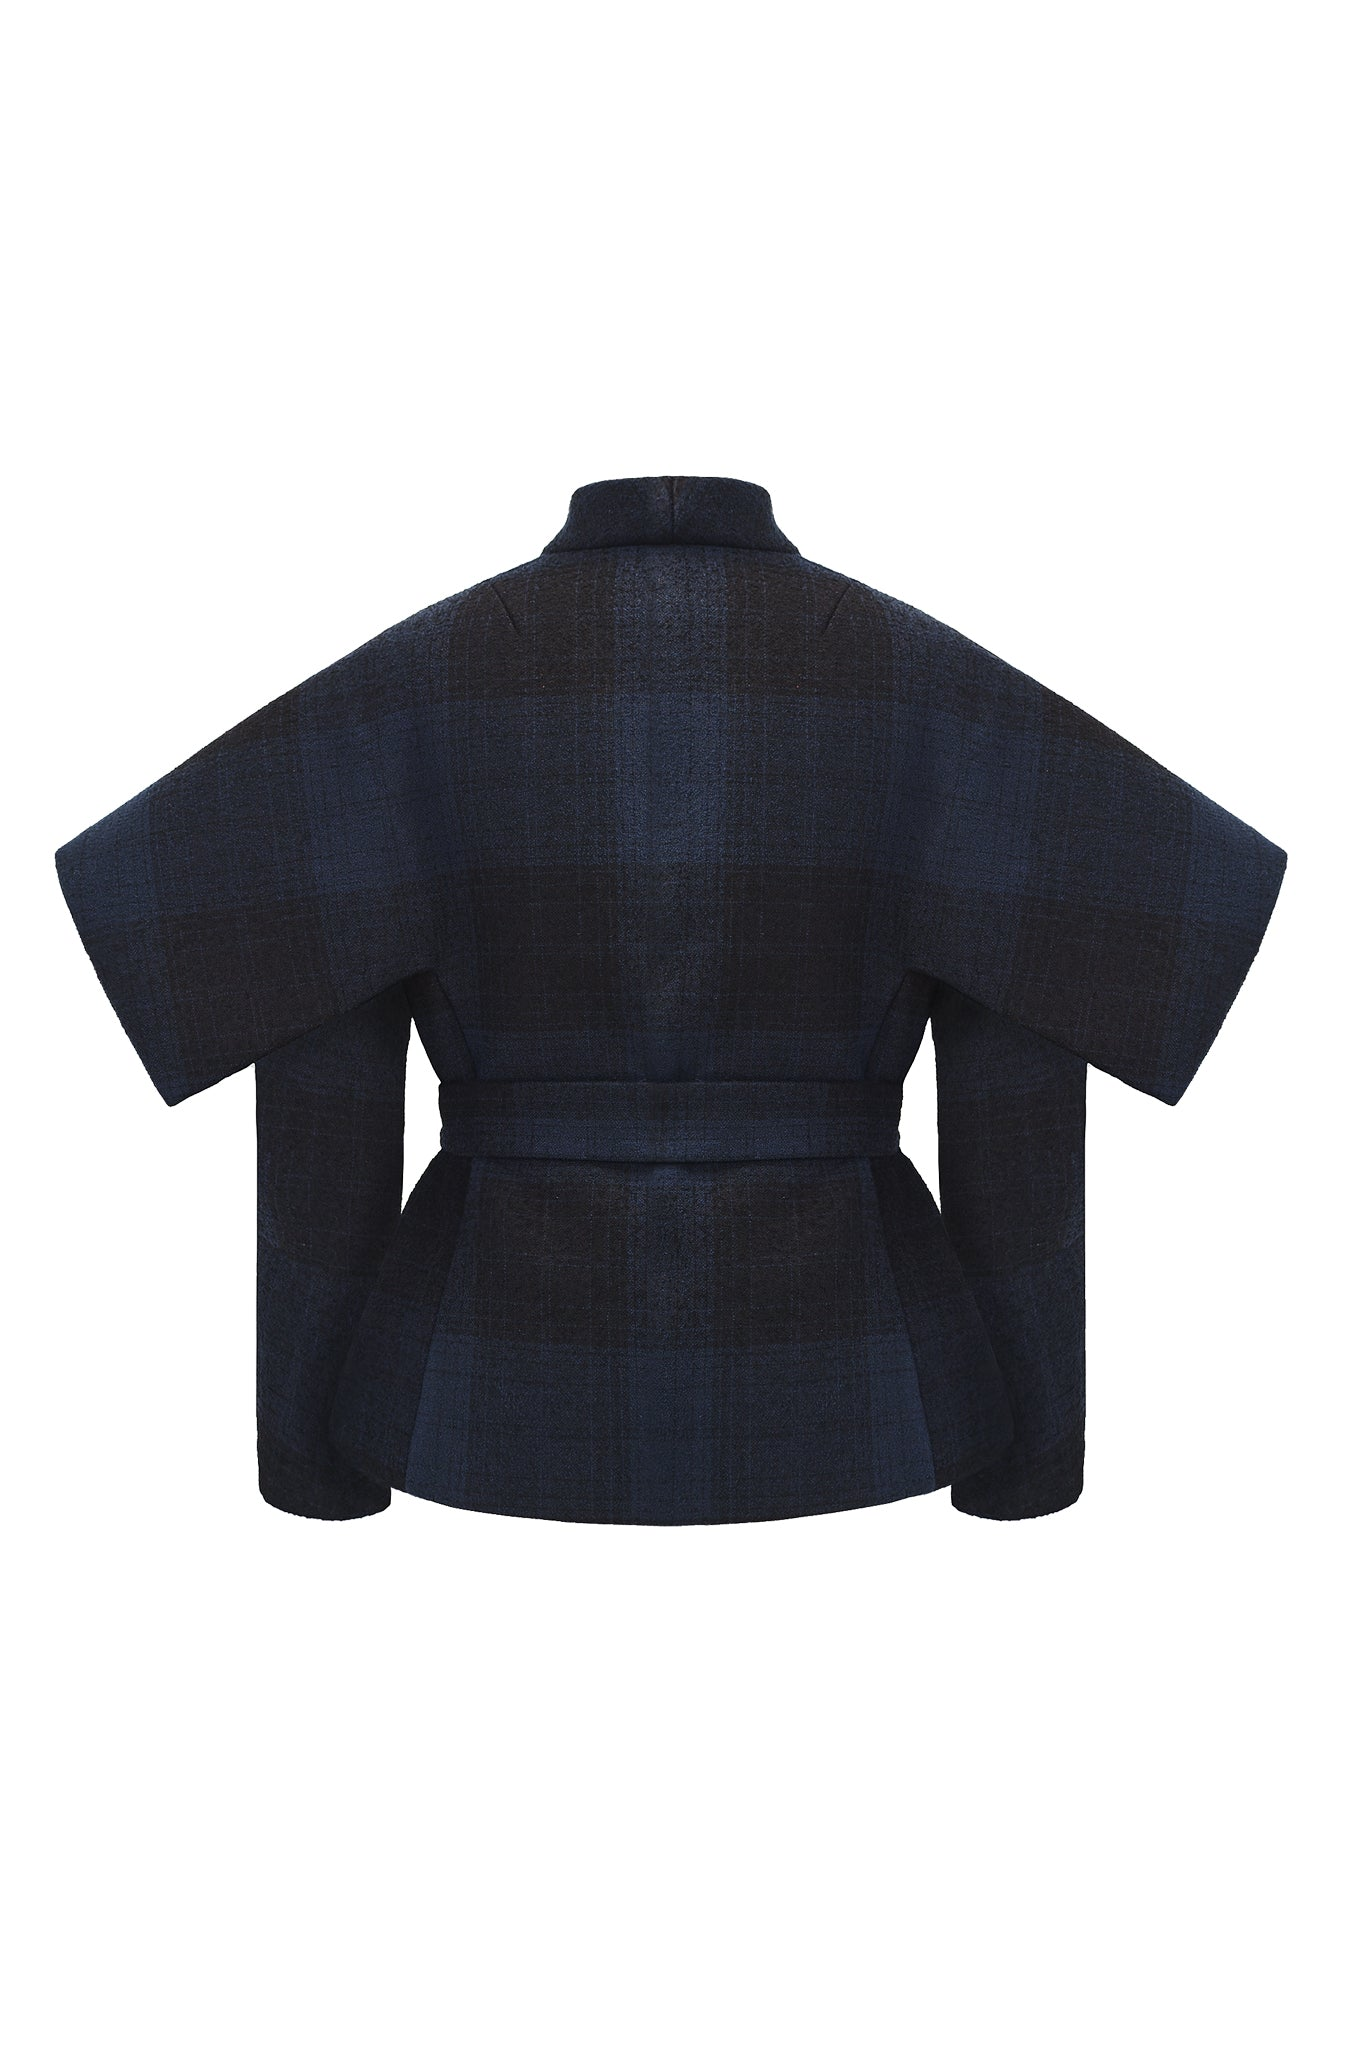 "Navy and Black Tartan Wool ""Armour"" Jacket"